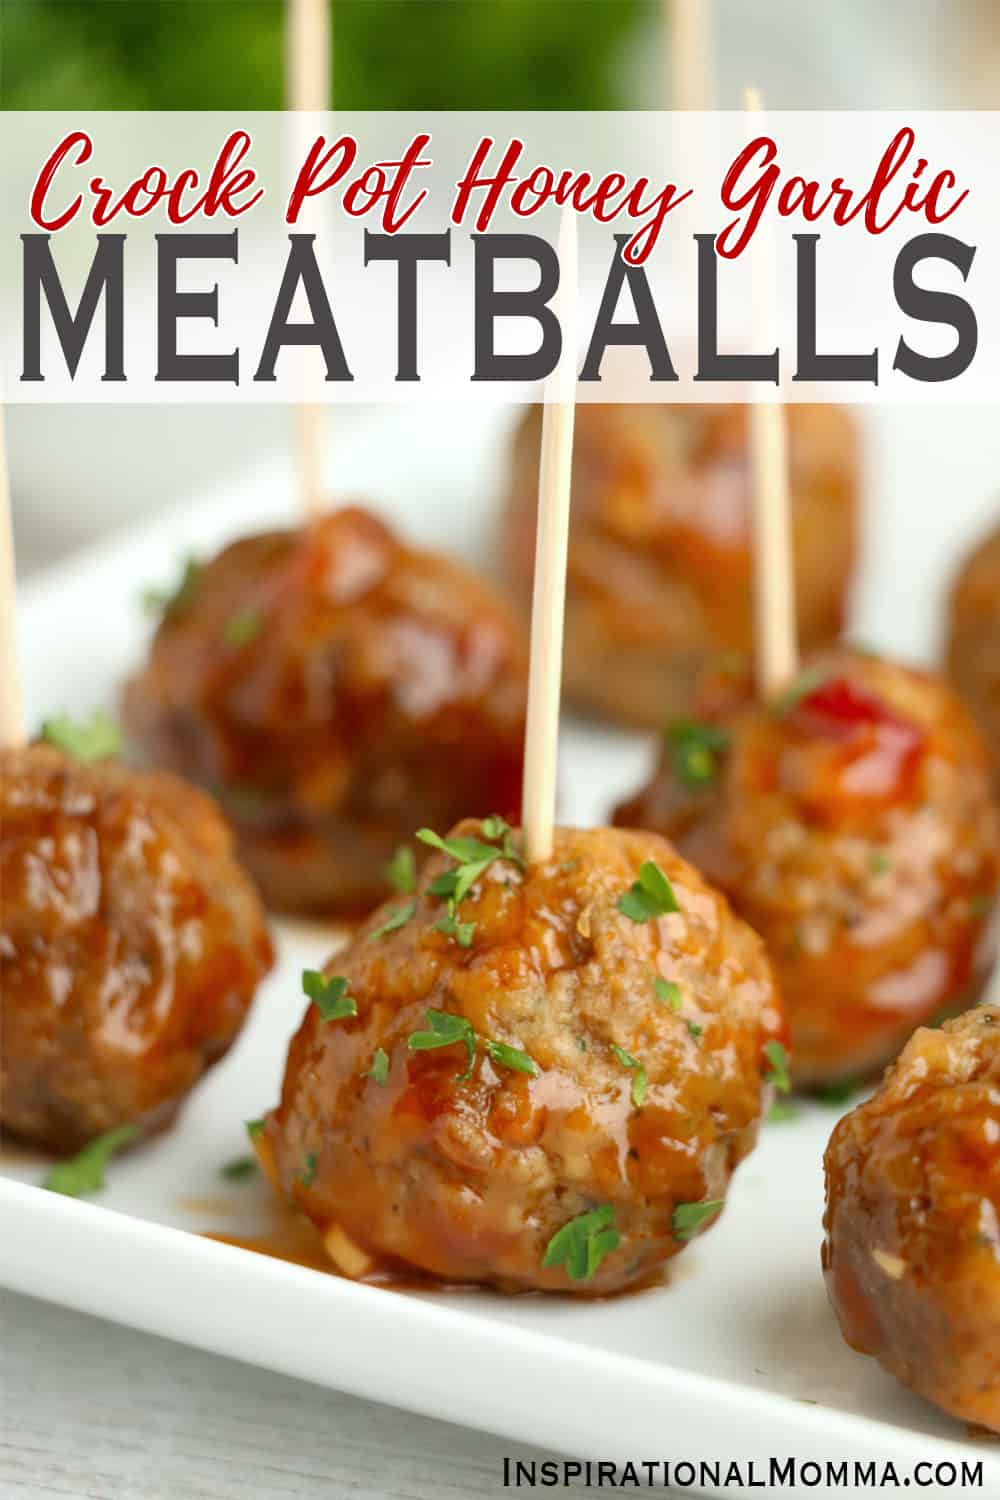 Crock Pot Honey Garlic Meatballs are packed with flavor and are easy to make! Appetizer or main course, they are delicious! #inspirationalmomma #crockpothoneygarlicmeatballs #honeygarlicmeatballs #meatballs #appetizers #appetizerrecipes #recipes